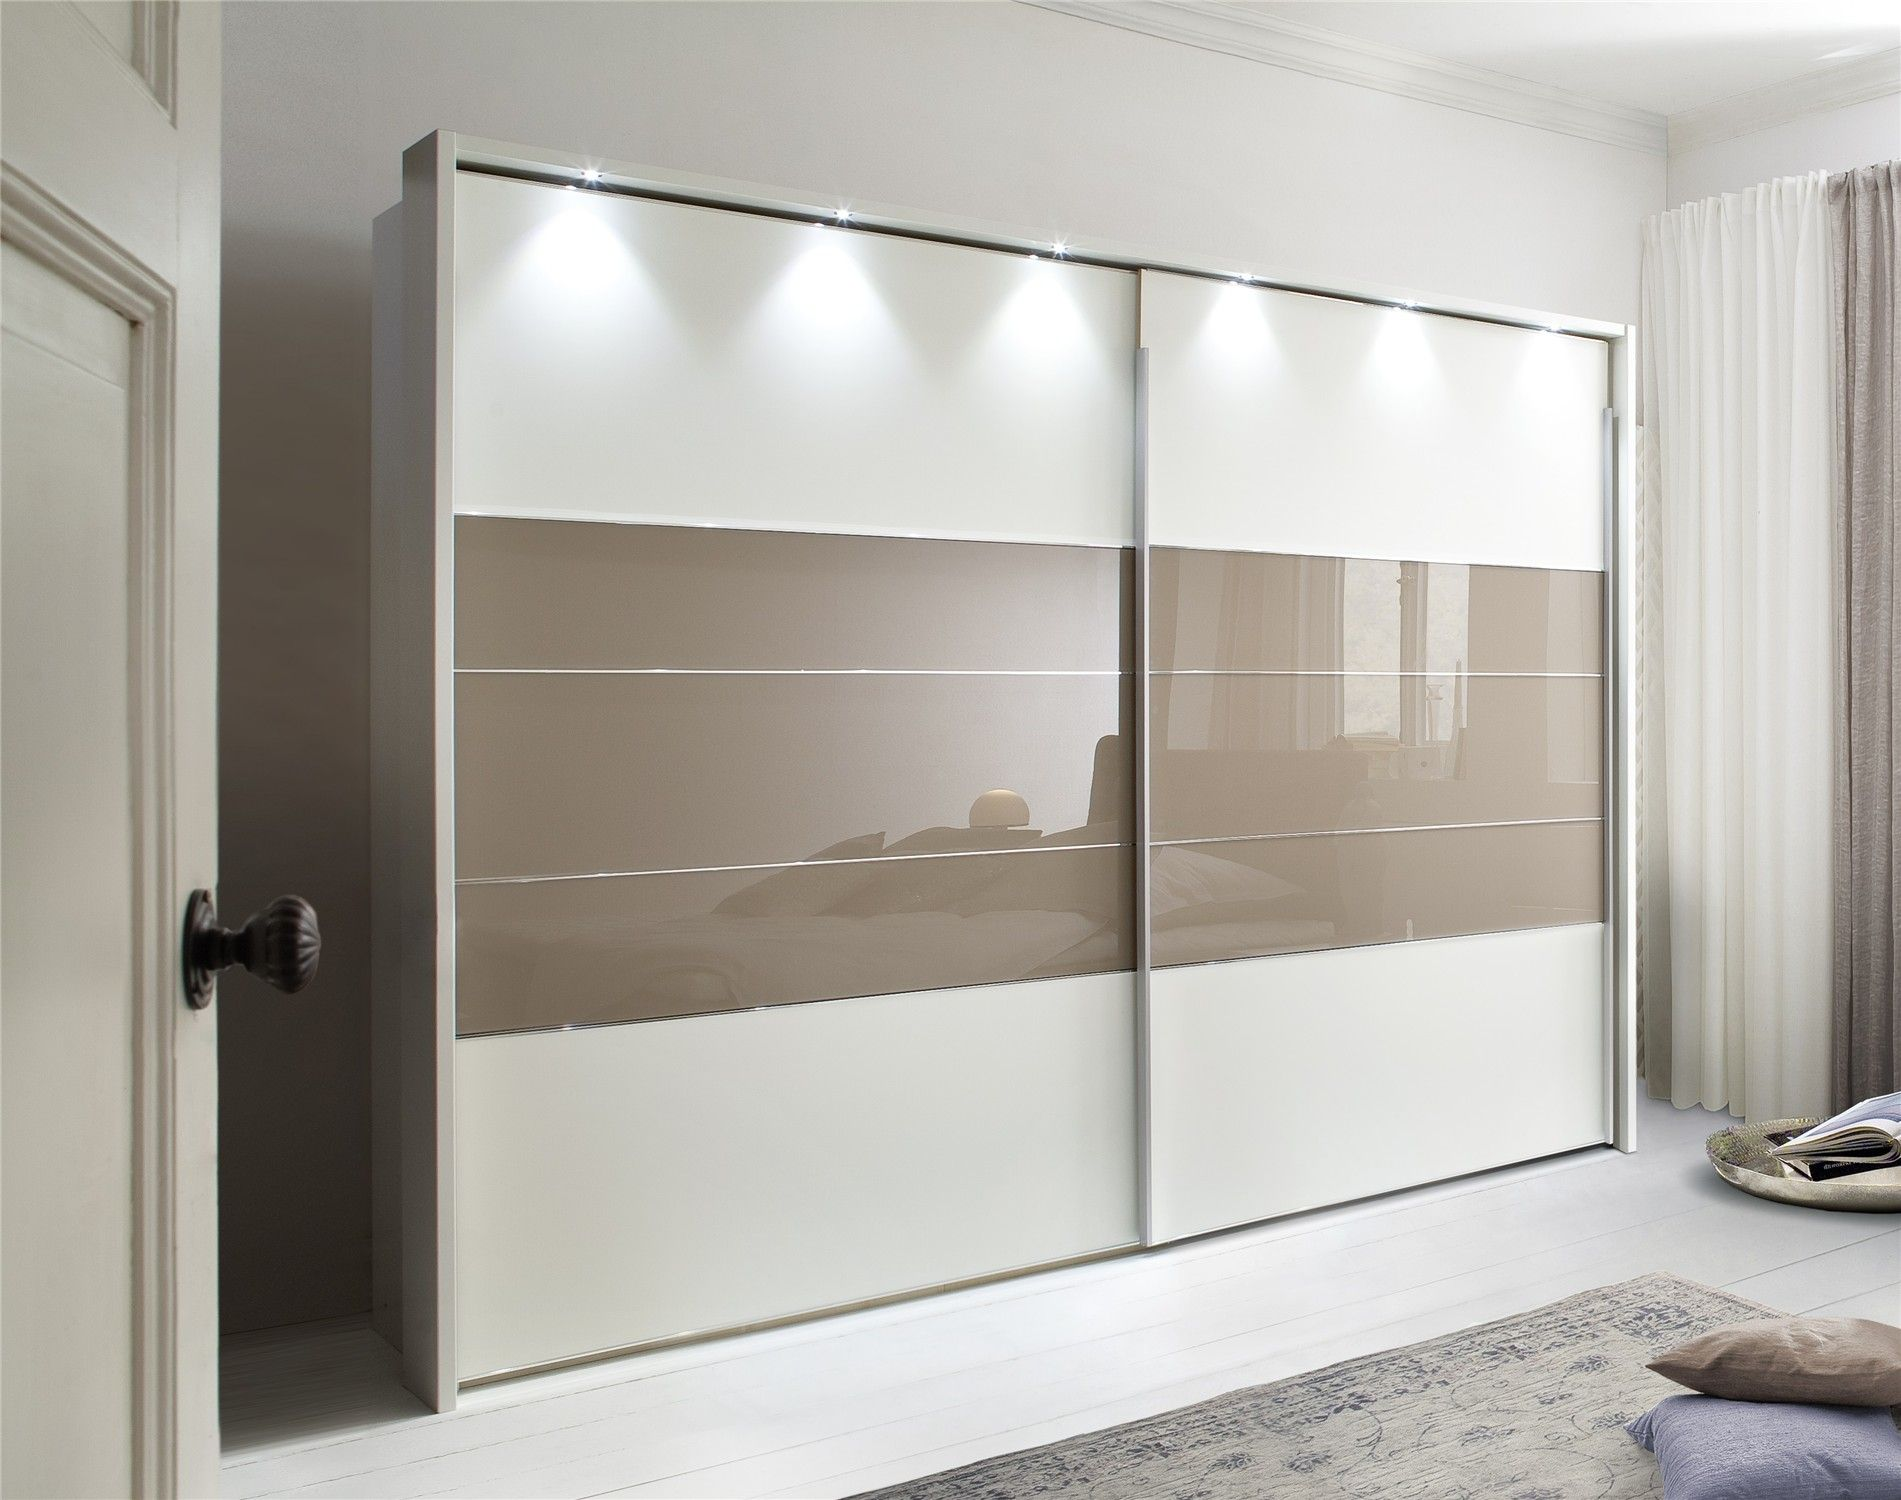 Wardrobe mirror sliding doors photo album christmas for Sliding wardrobe interior designs